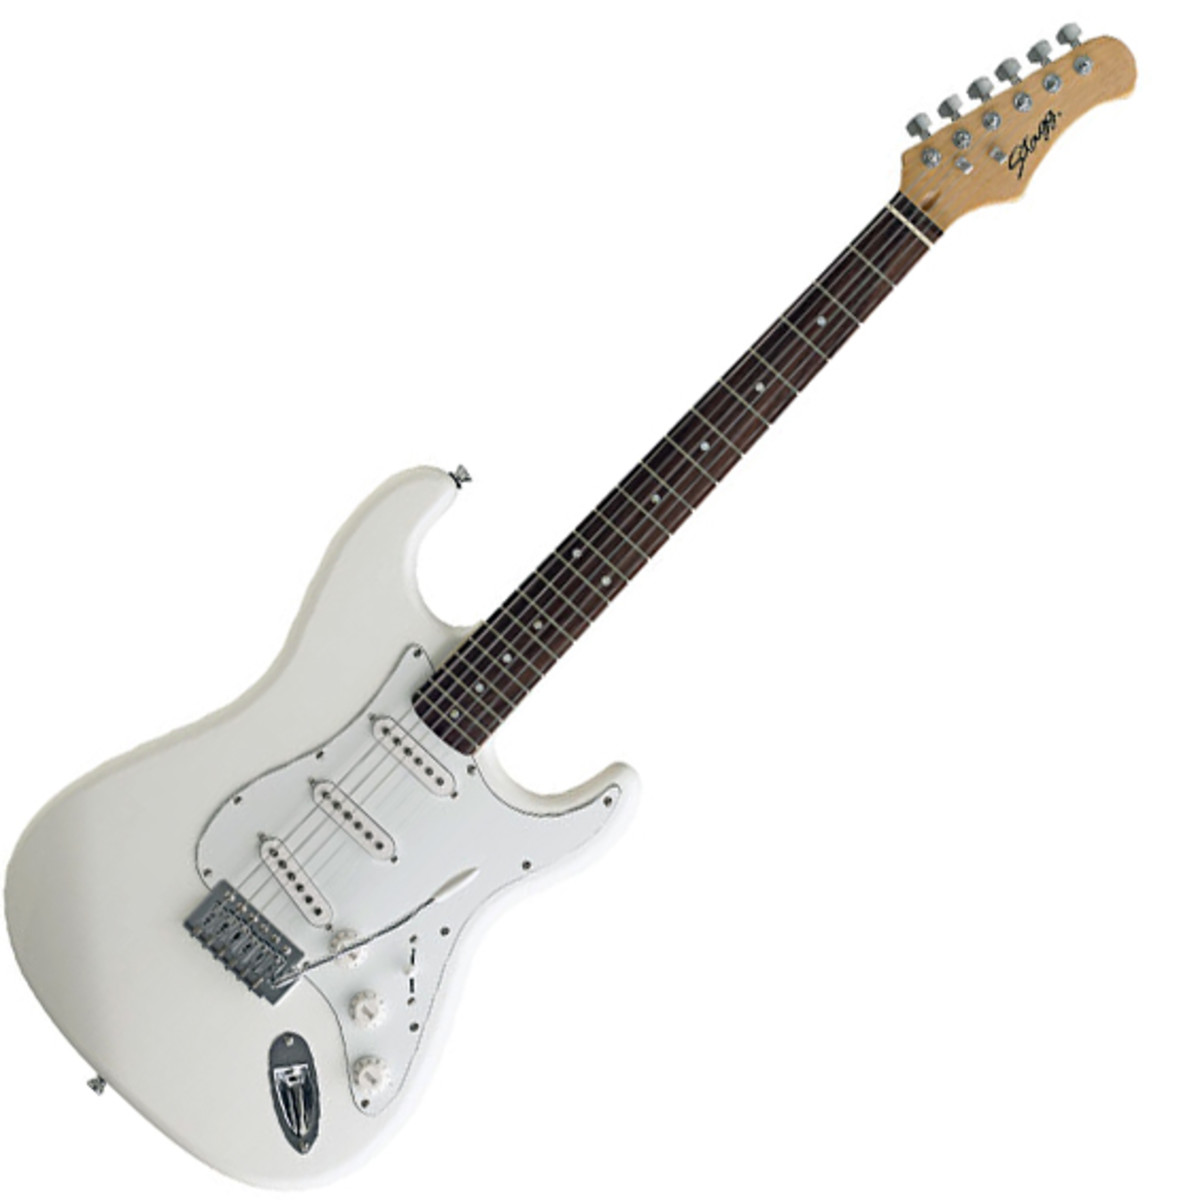 stagg-stratocaster-review